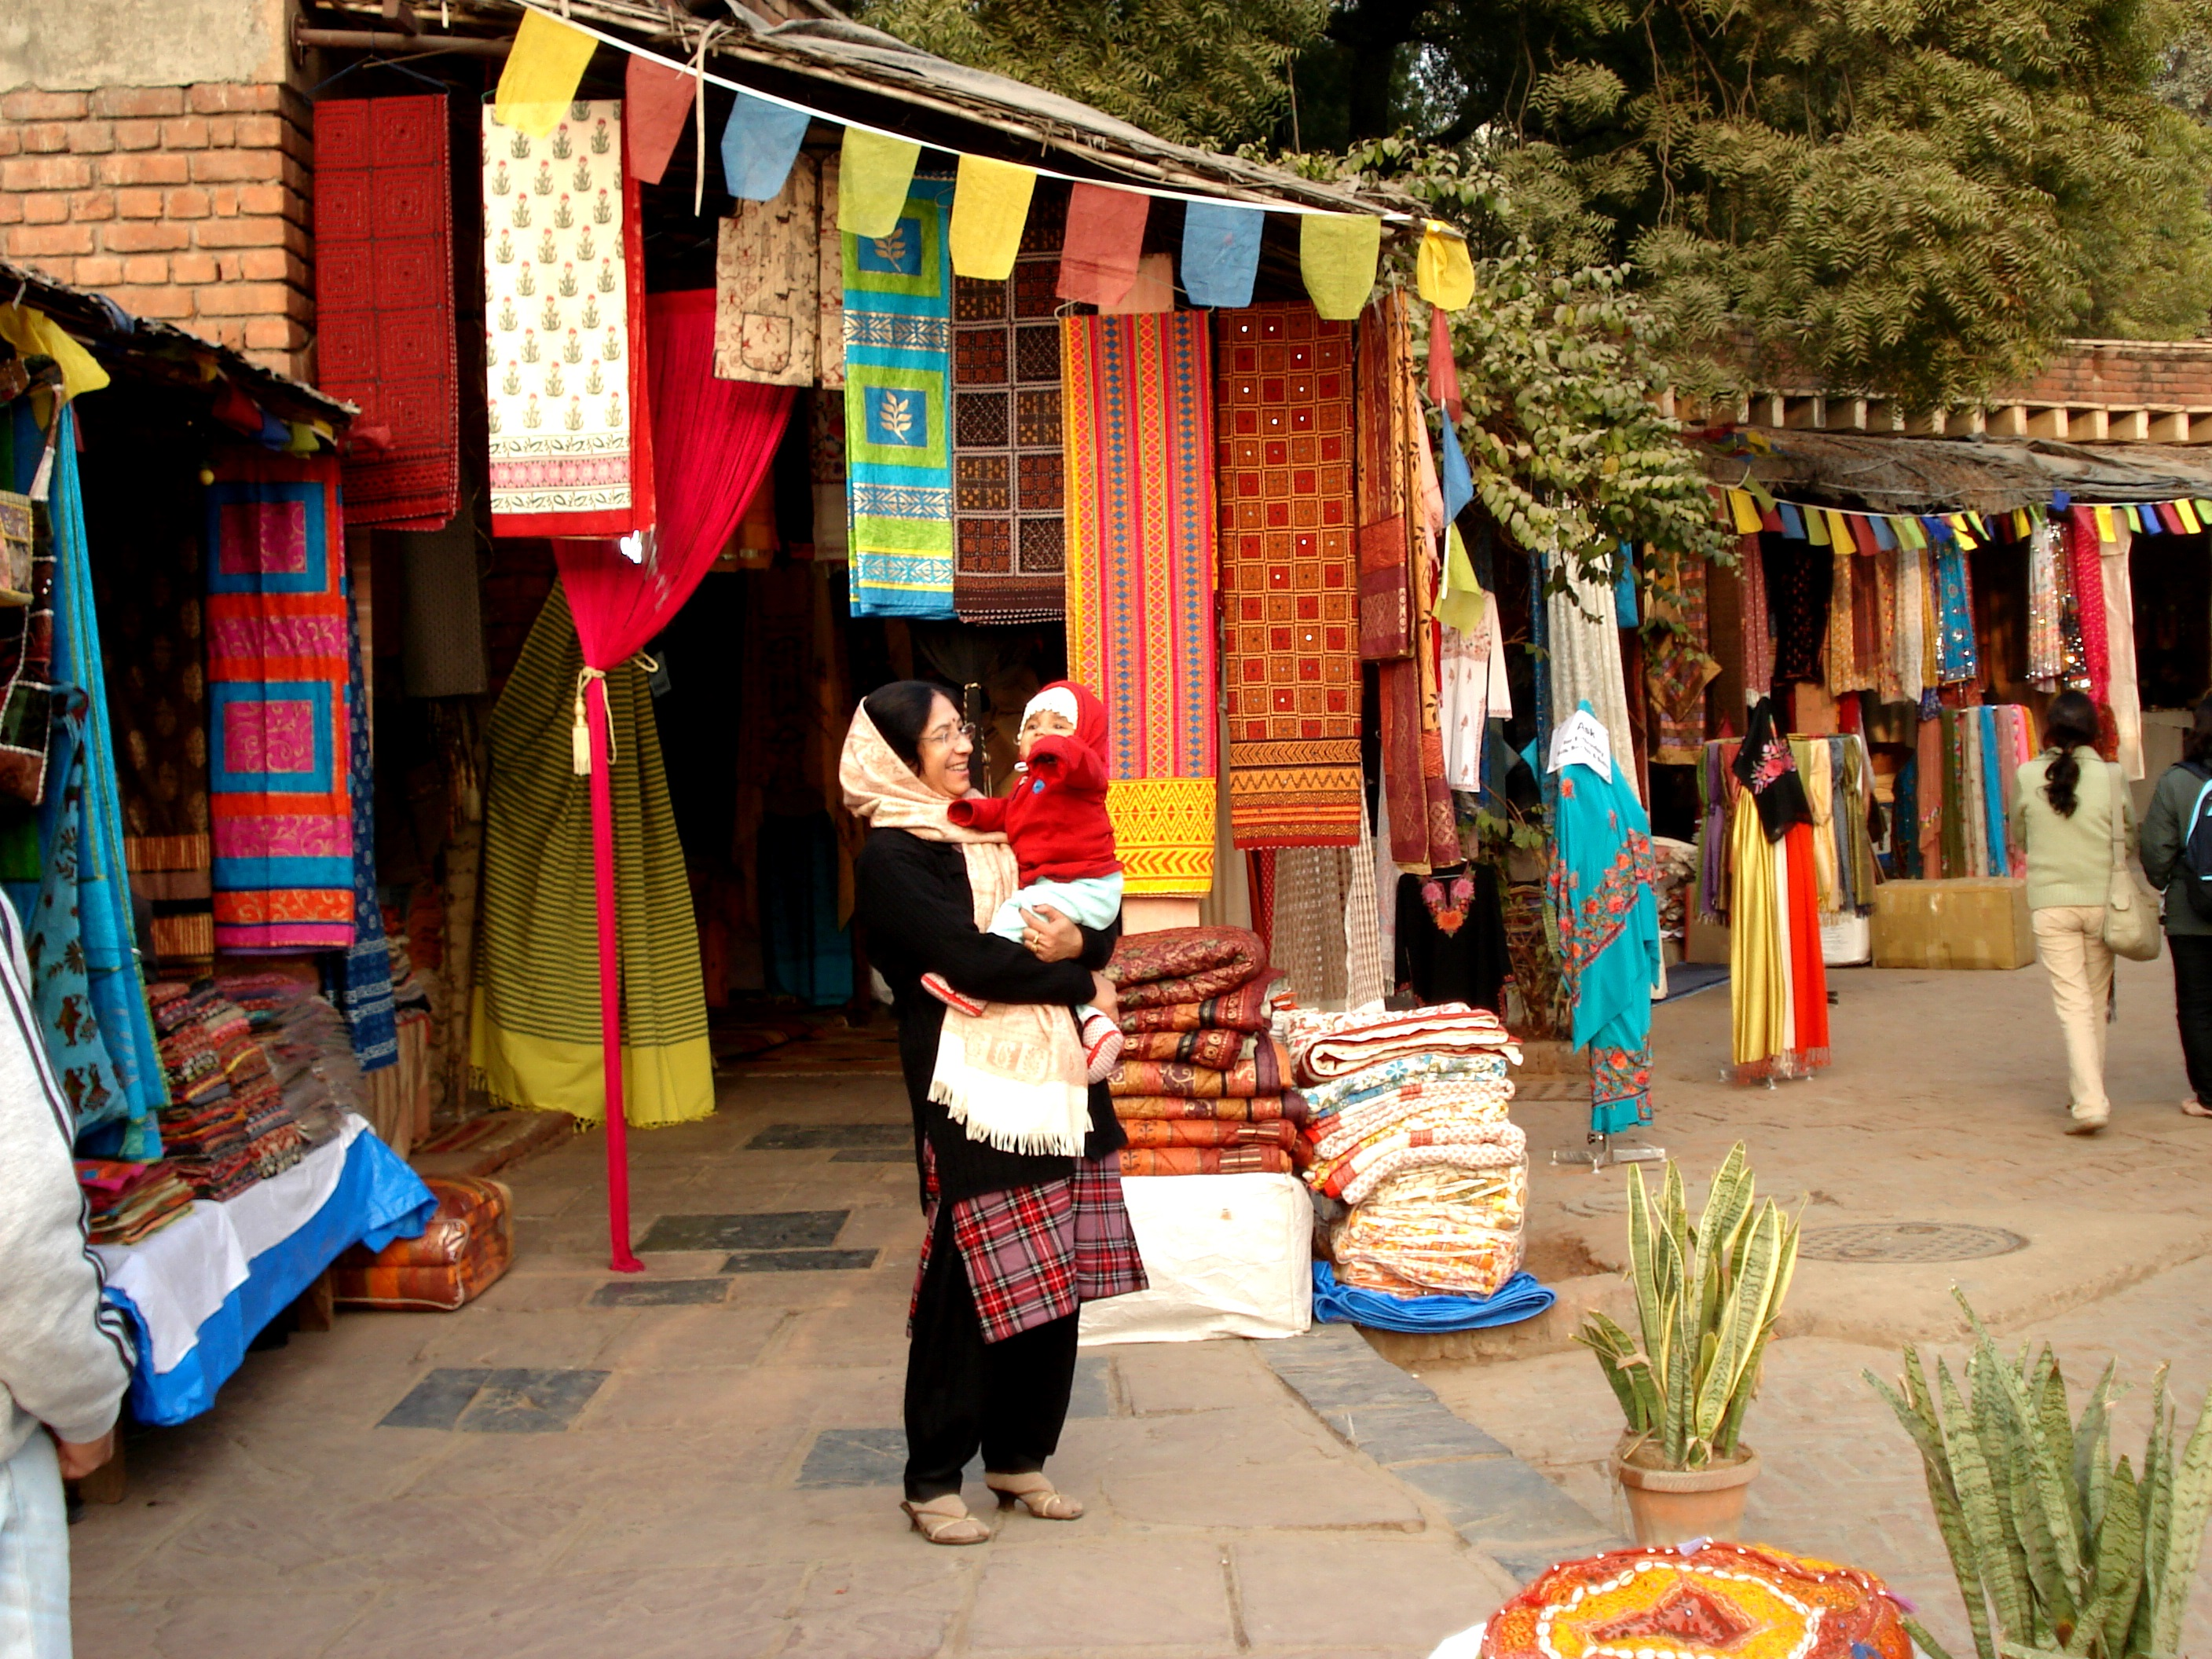 case studies on delhi hhaat and hodka - PDF Free Download